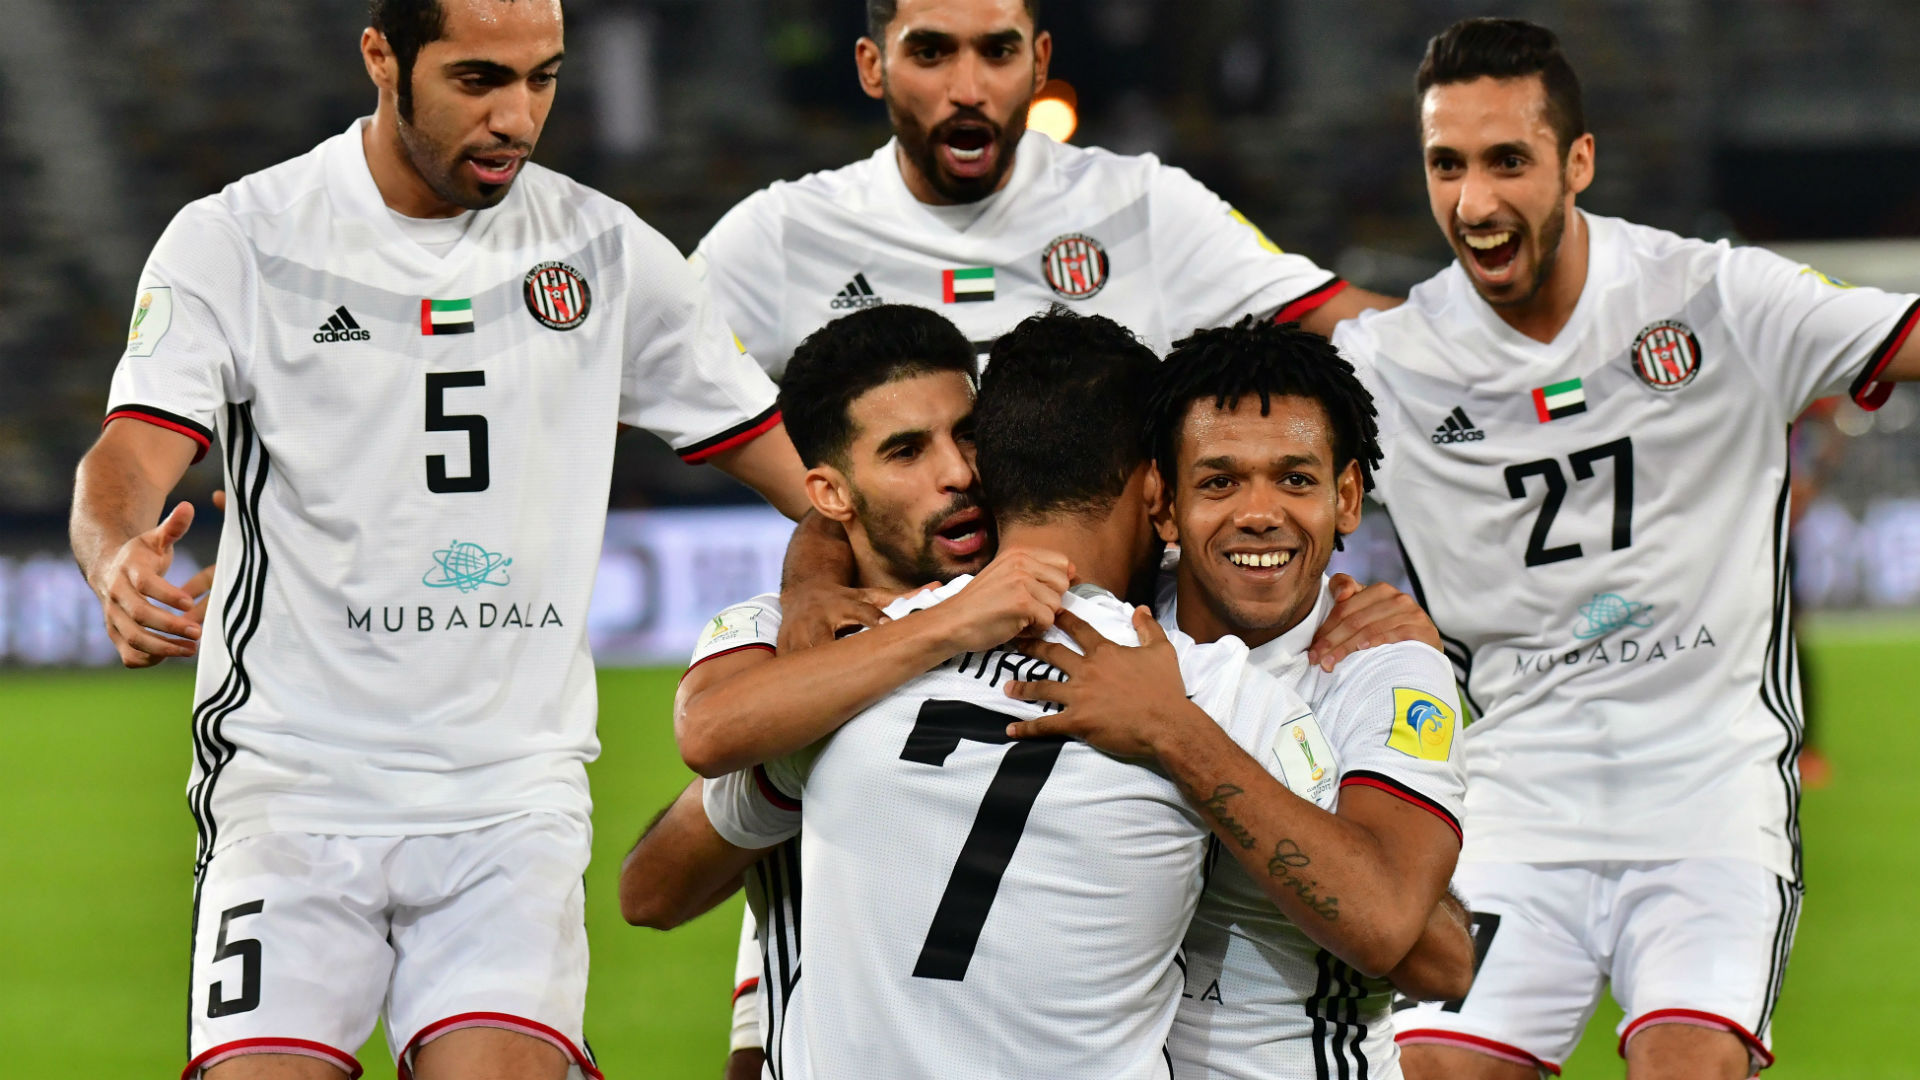 Ali Mabkhout Al Jazira Club World Cup